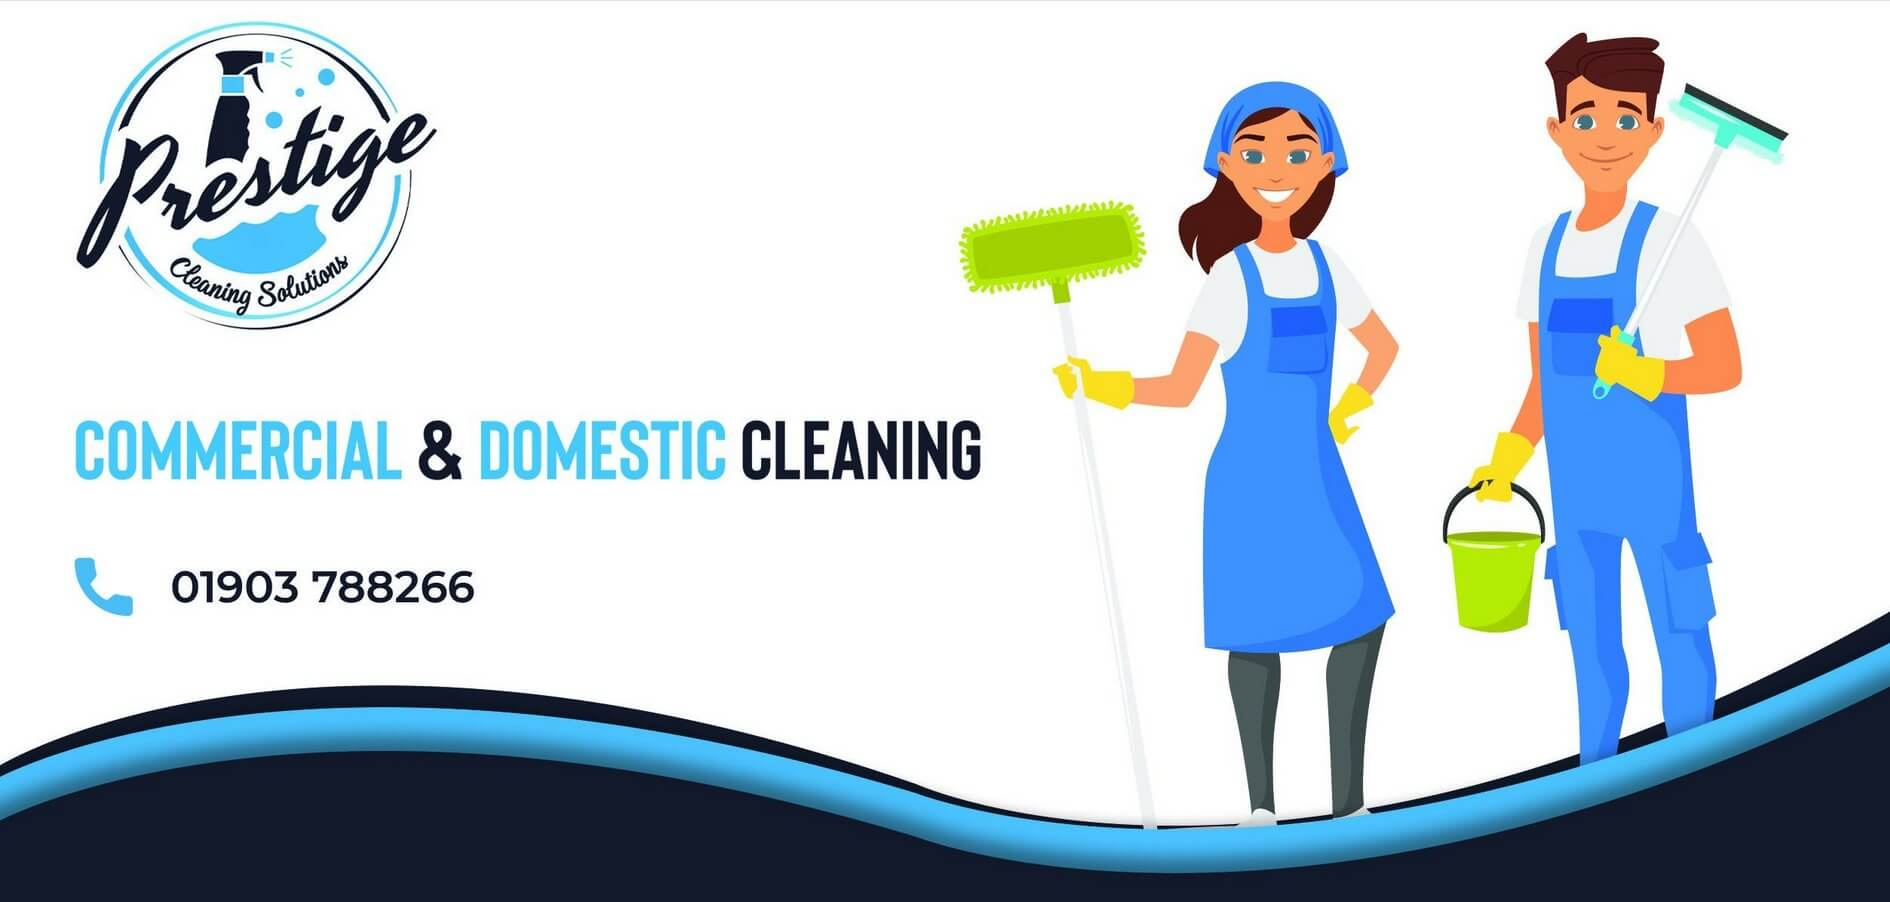 Cleaning Sector